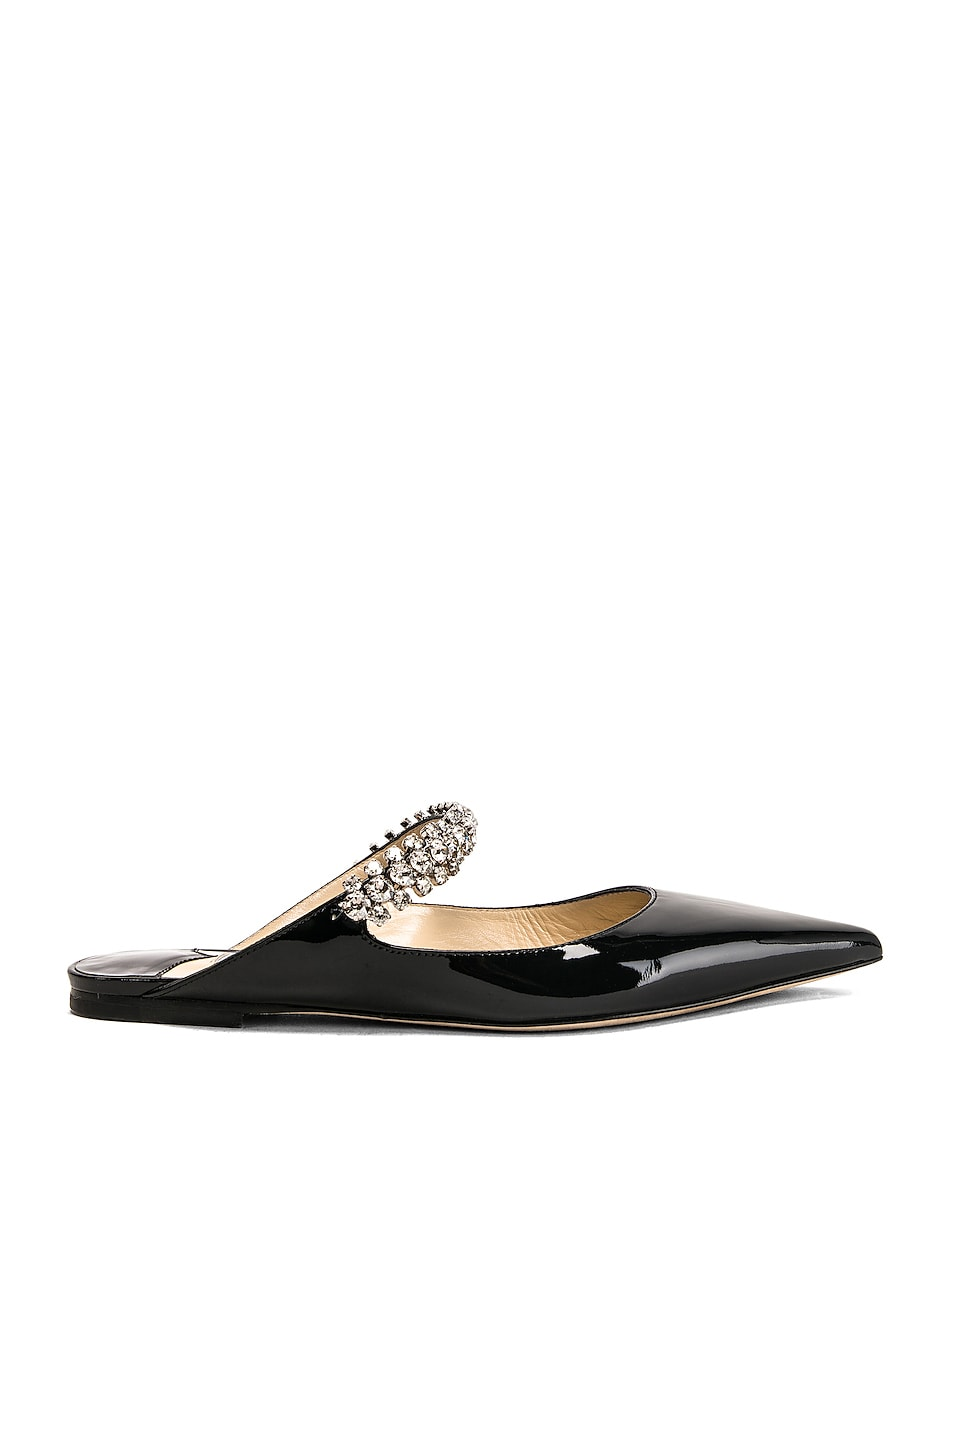 Image 1 of Jimmy Choo Bing Patent Leather Flat in Black